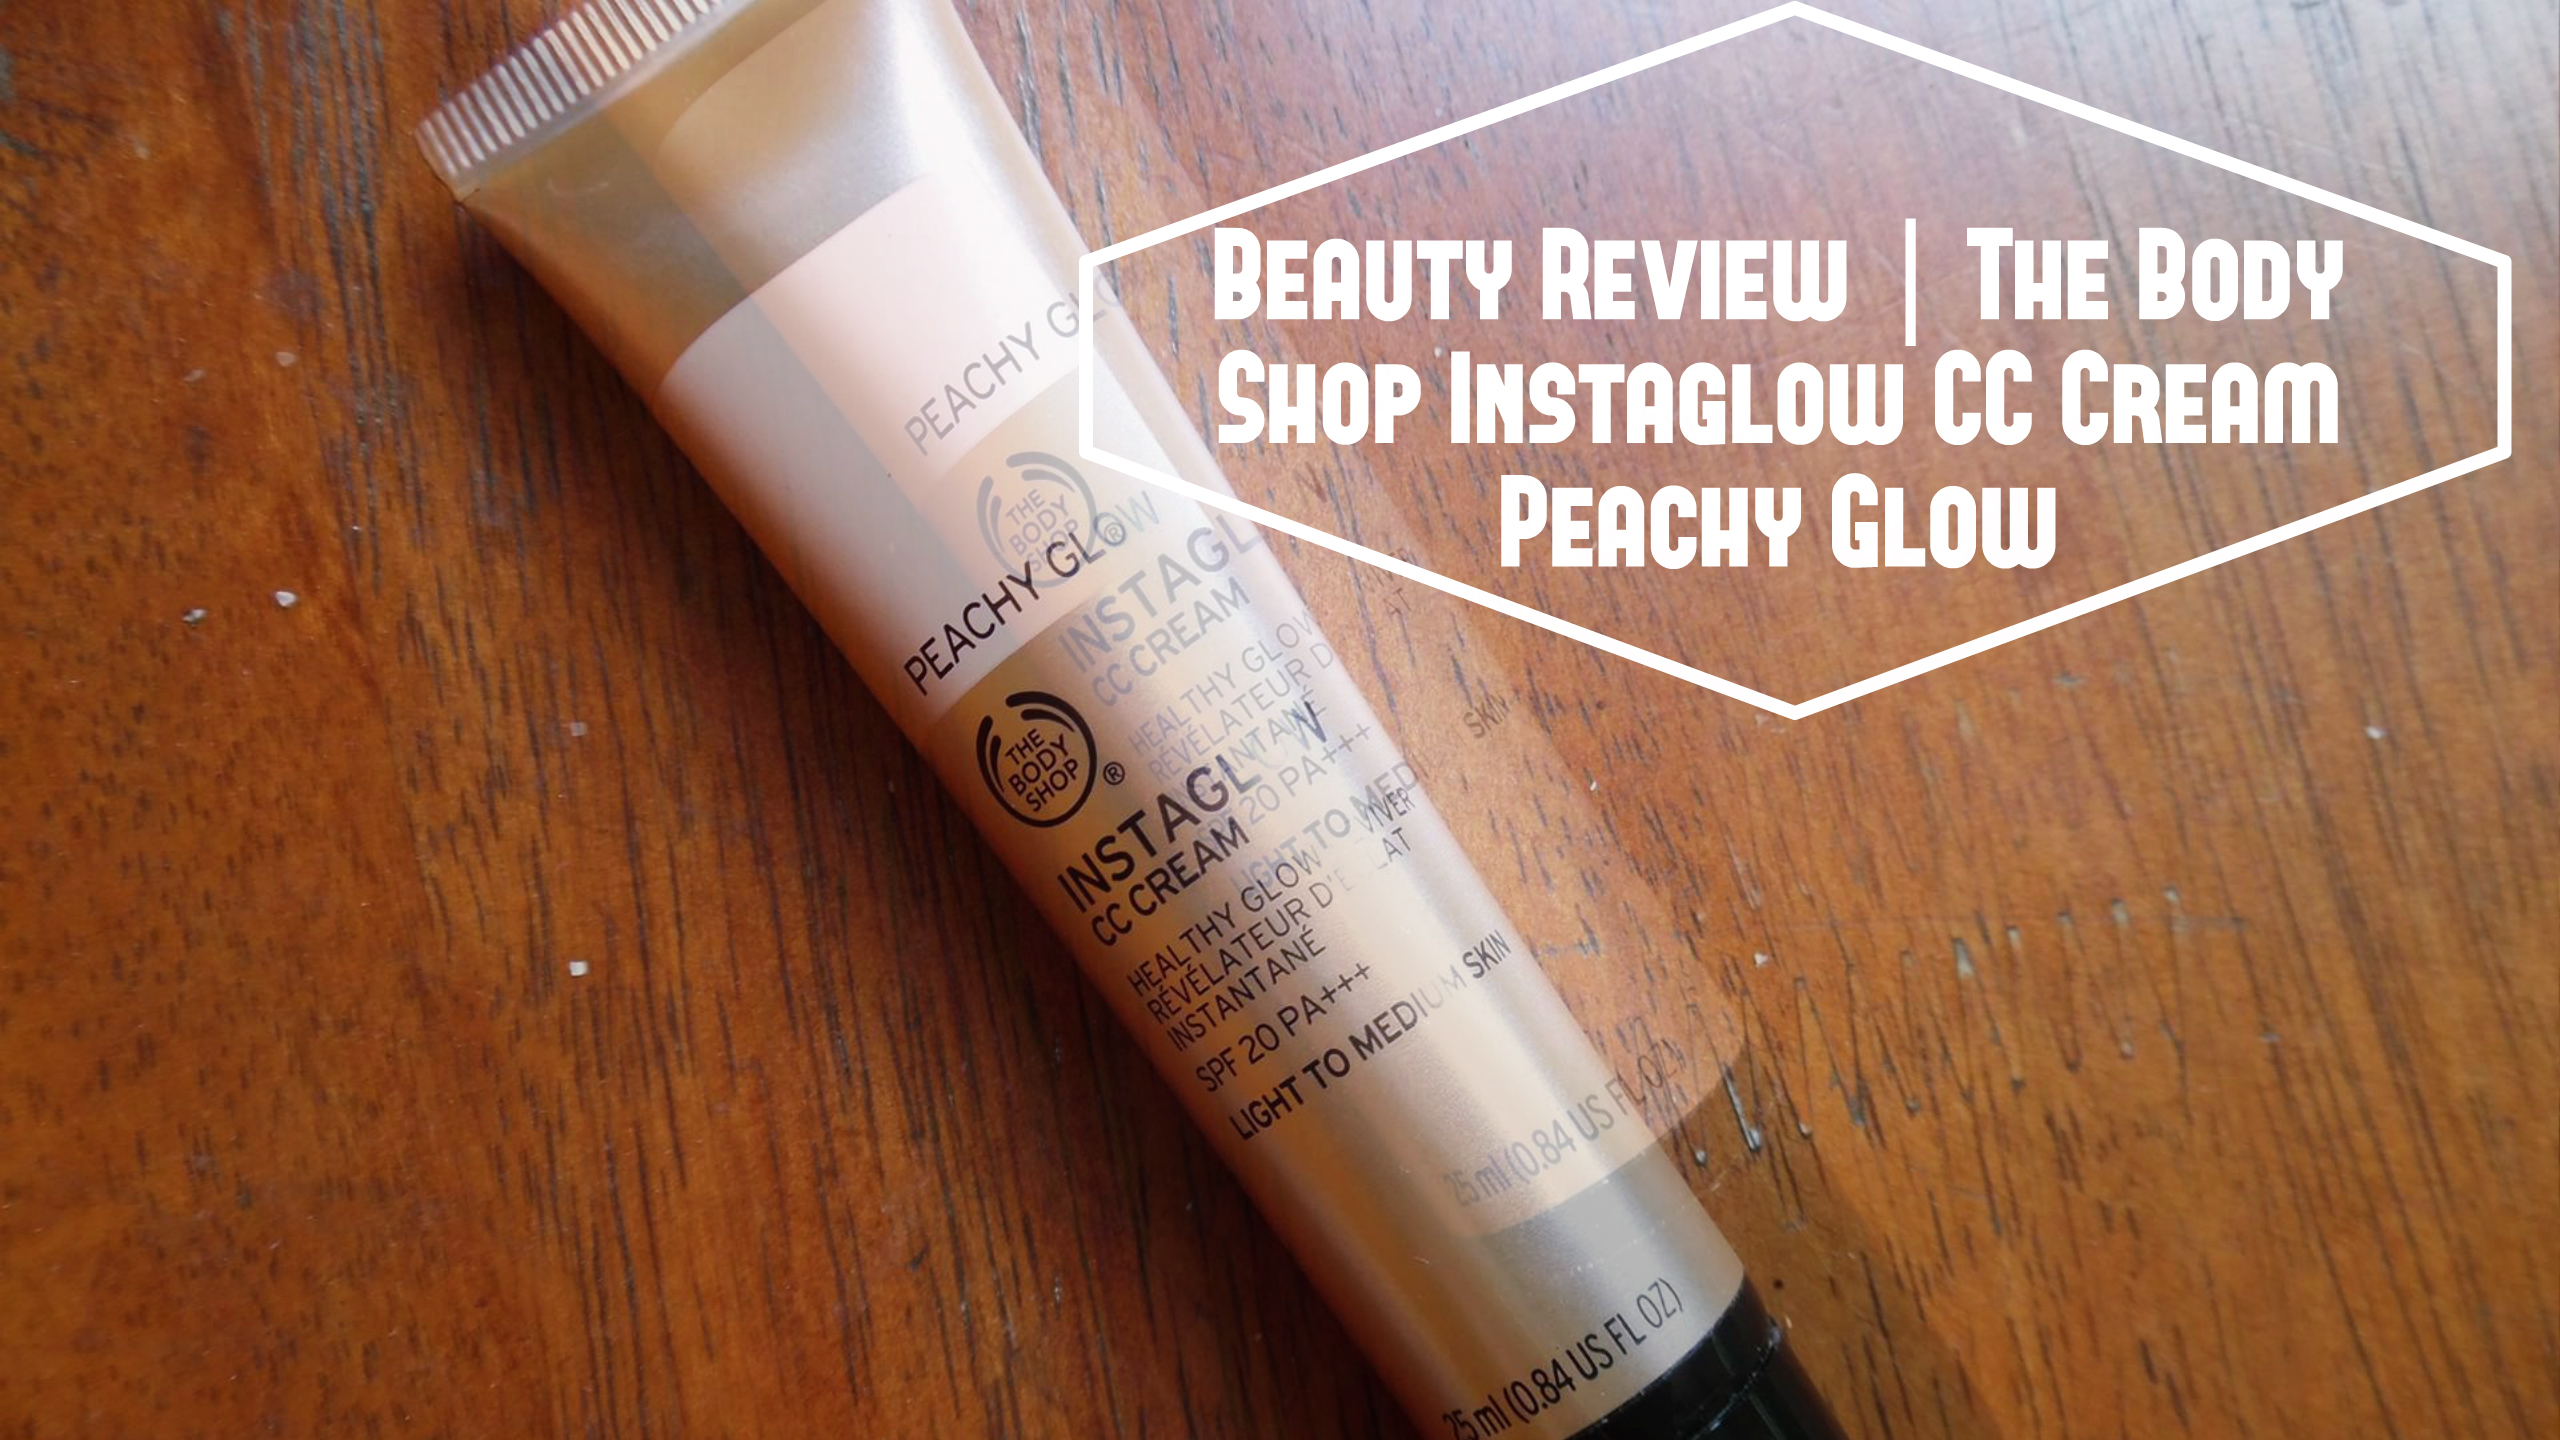 Beauty Review The Body Shop Instaglow Cc Cream Peachy Glow Perin Sidhu